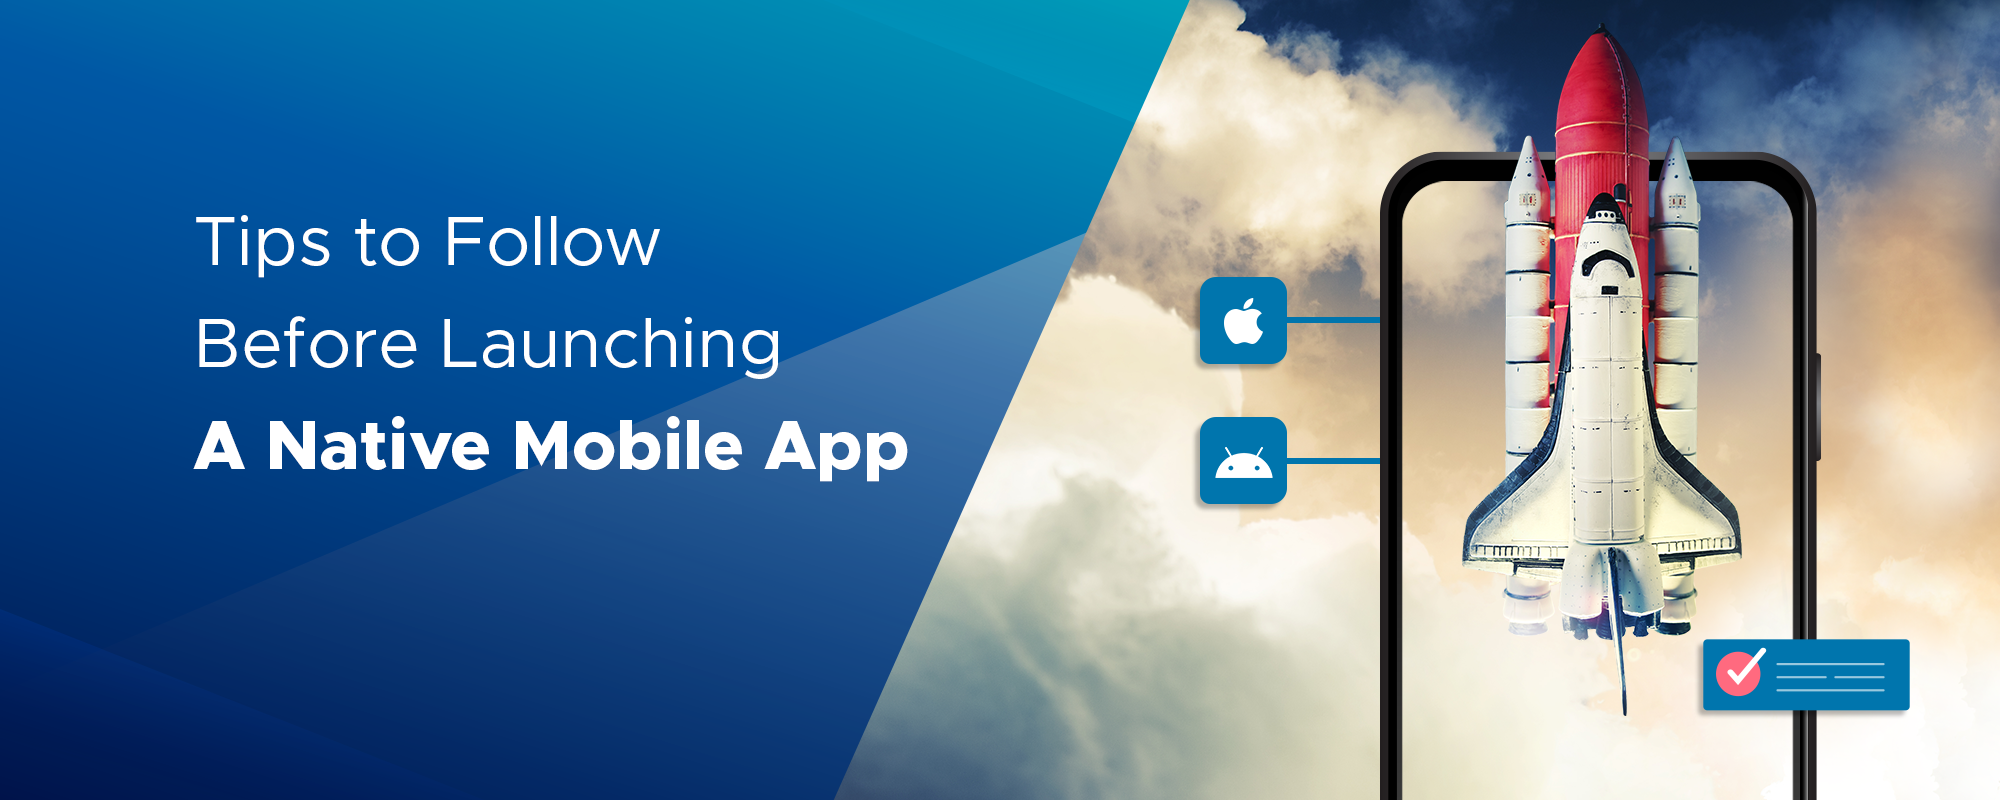 Tips to Follow Before Launching a Native Mobile App